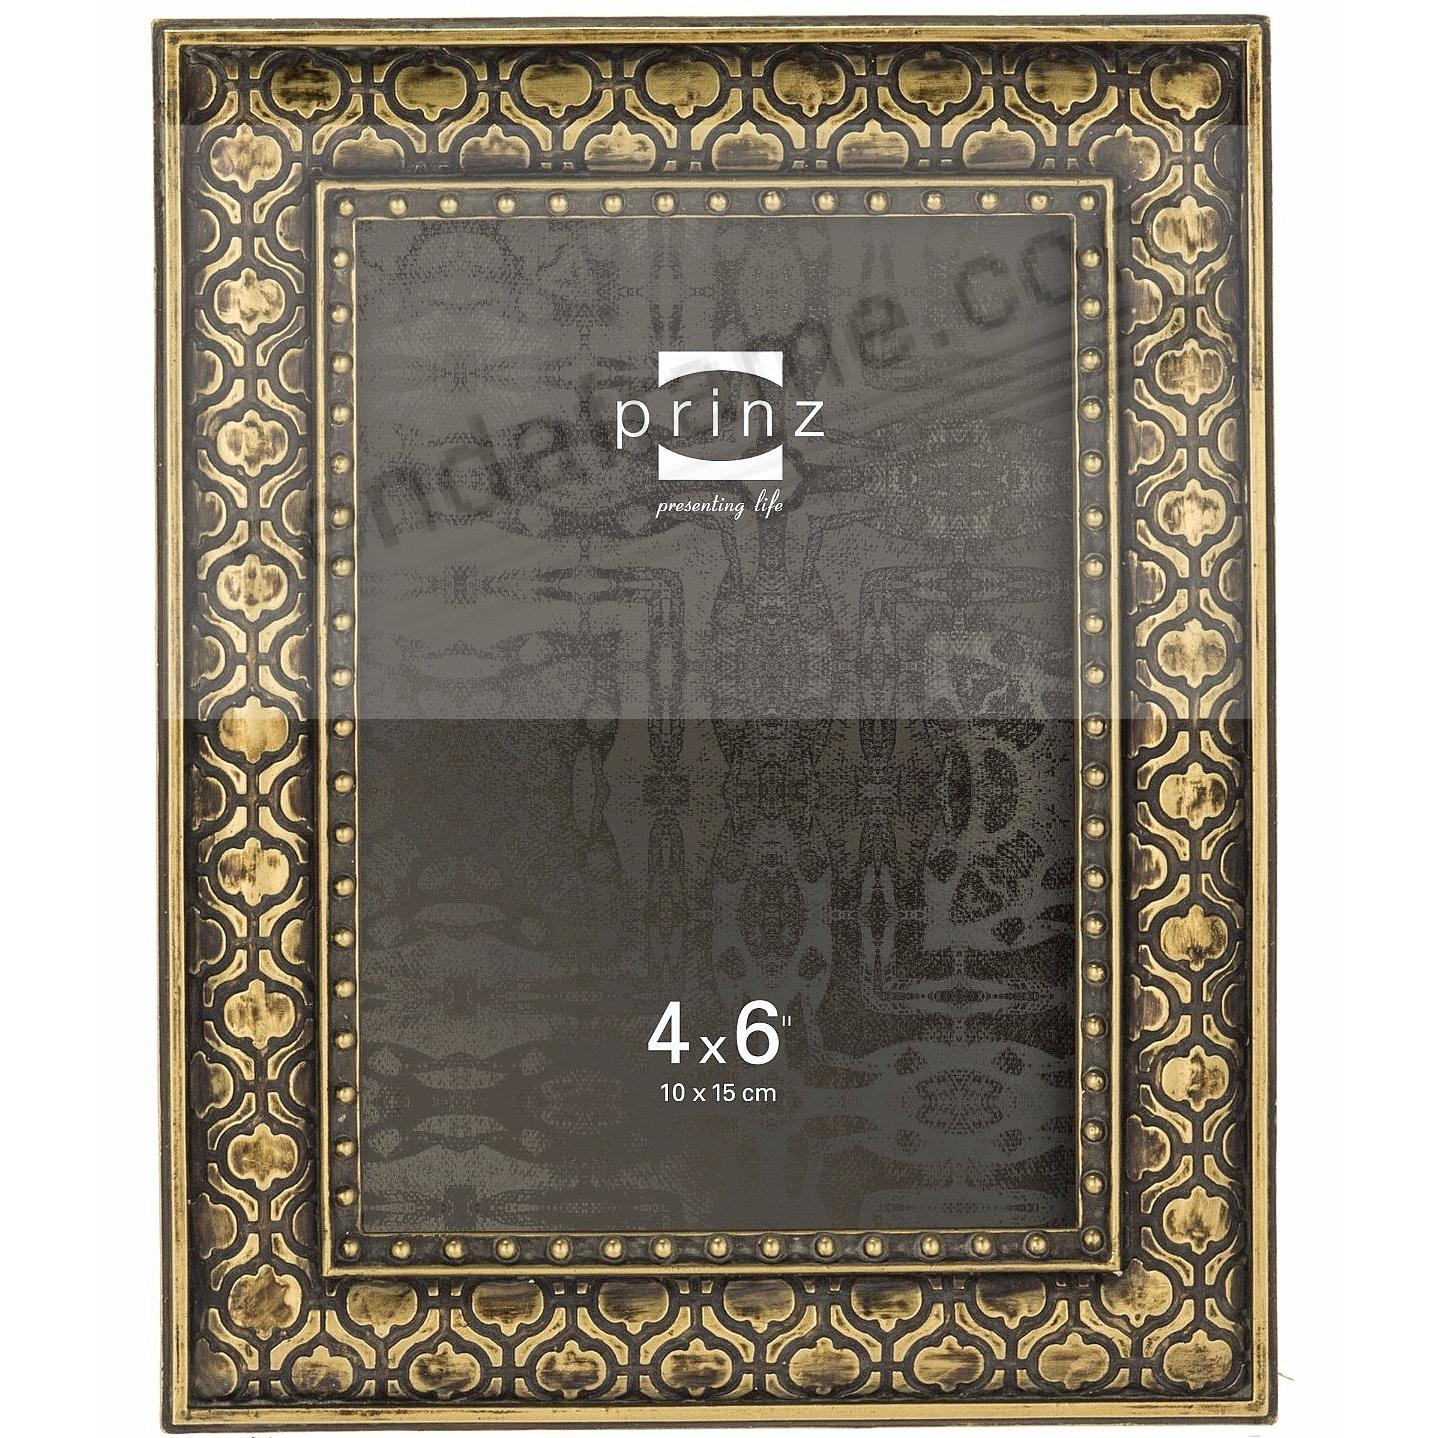 CABOT Arabesque Gold finish 8x10 frame by Prinz® - Picture Frames ...